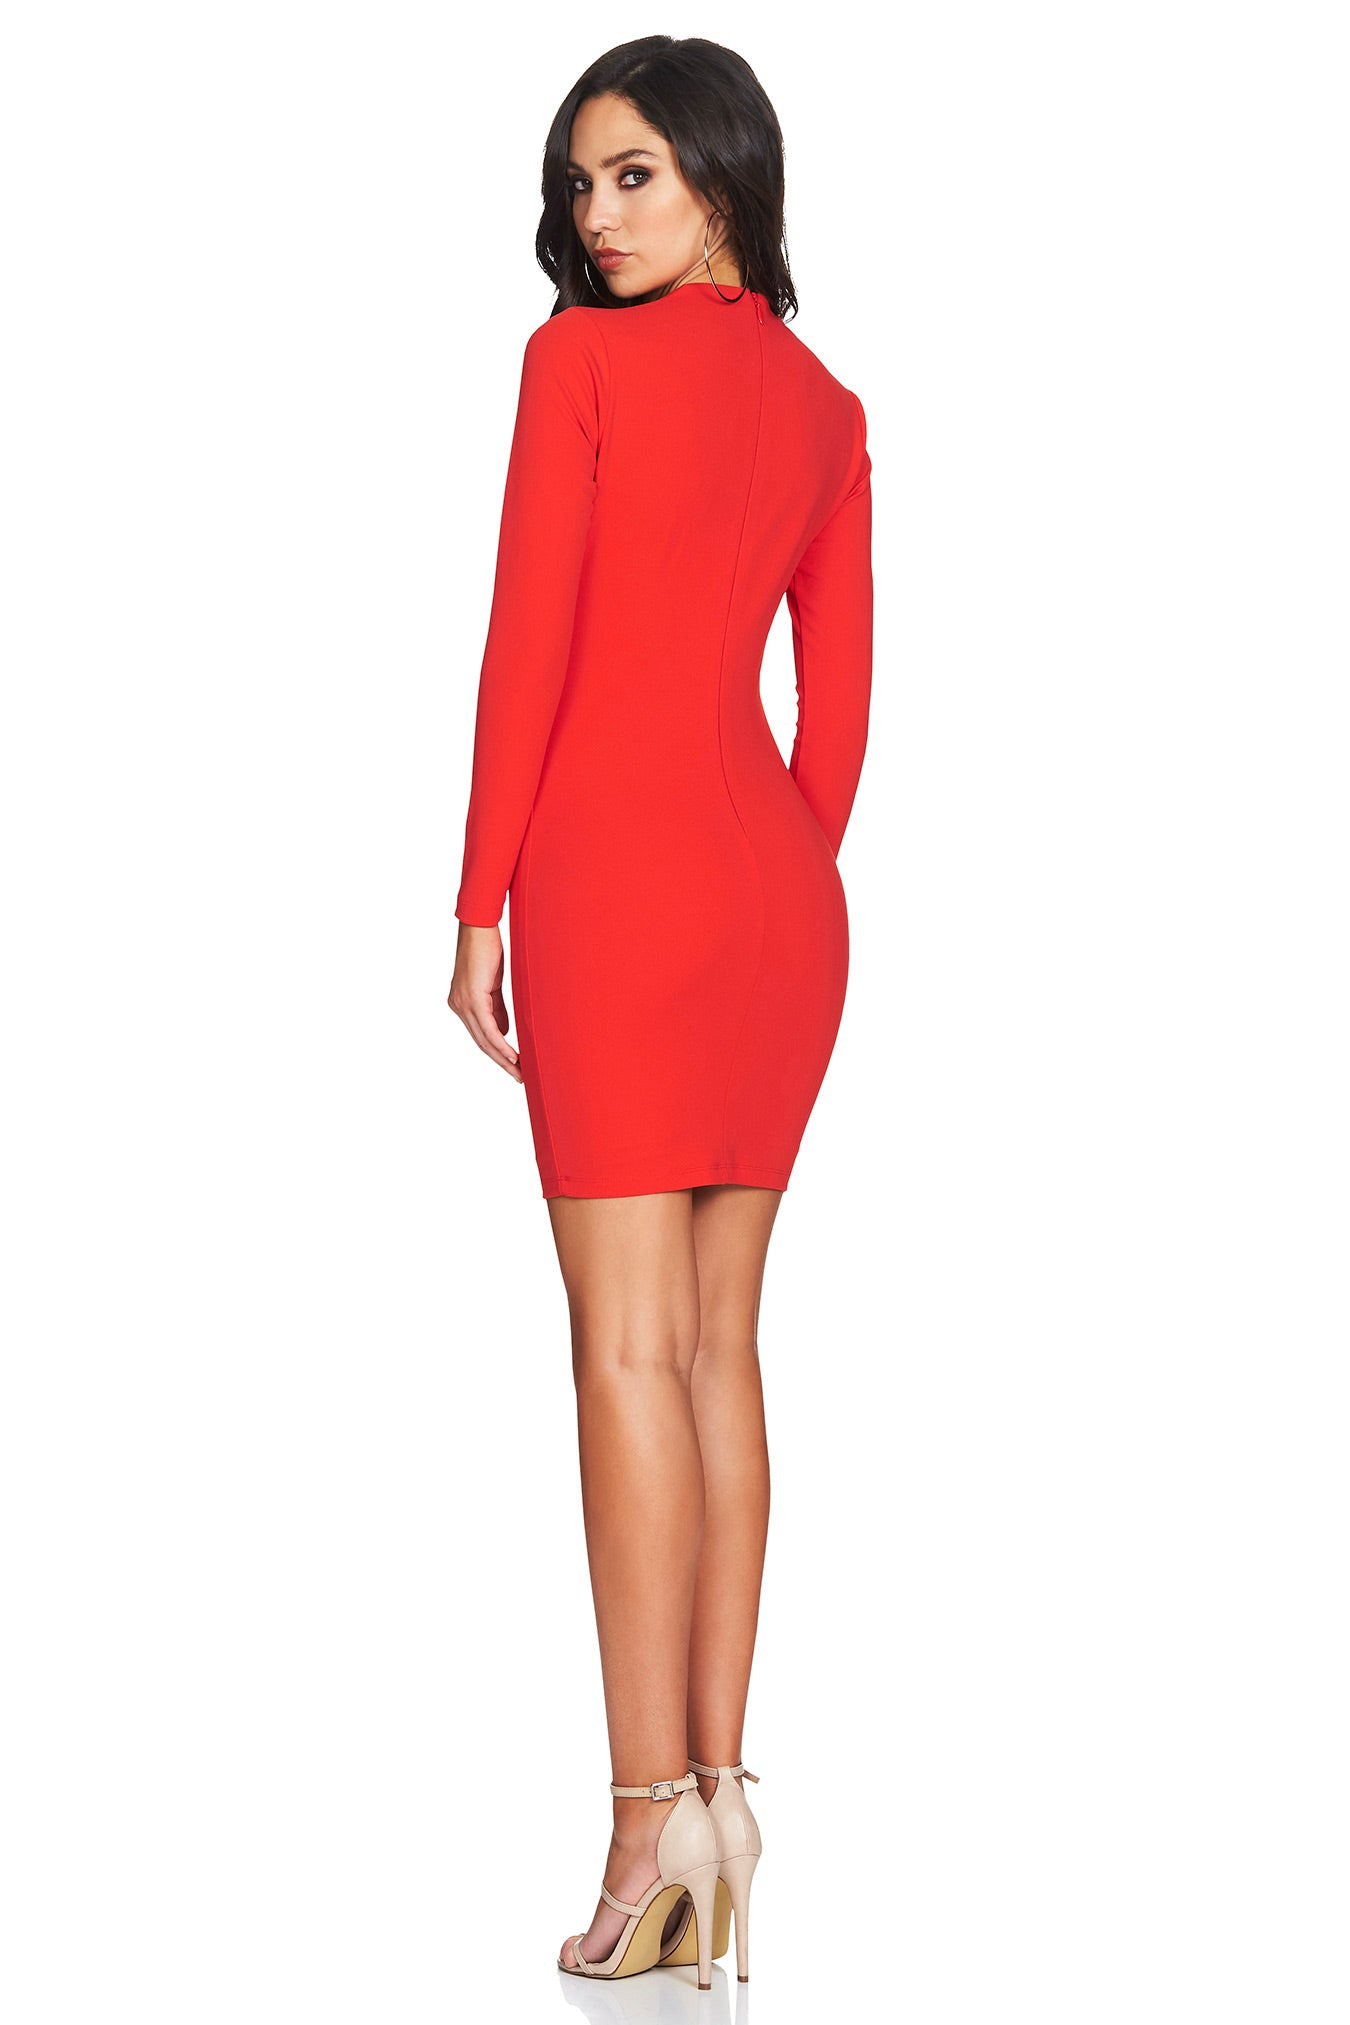 red long sleeve bodycon dress